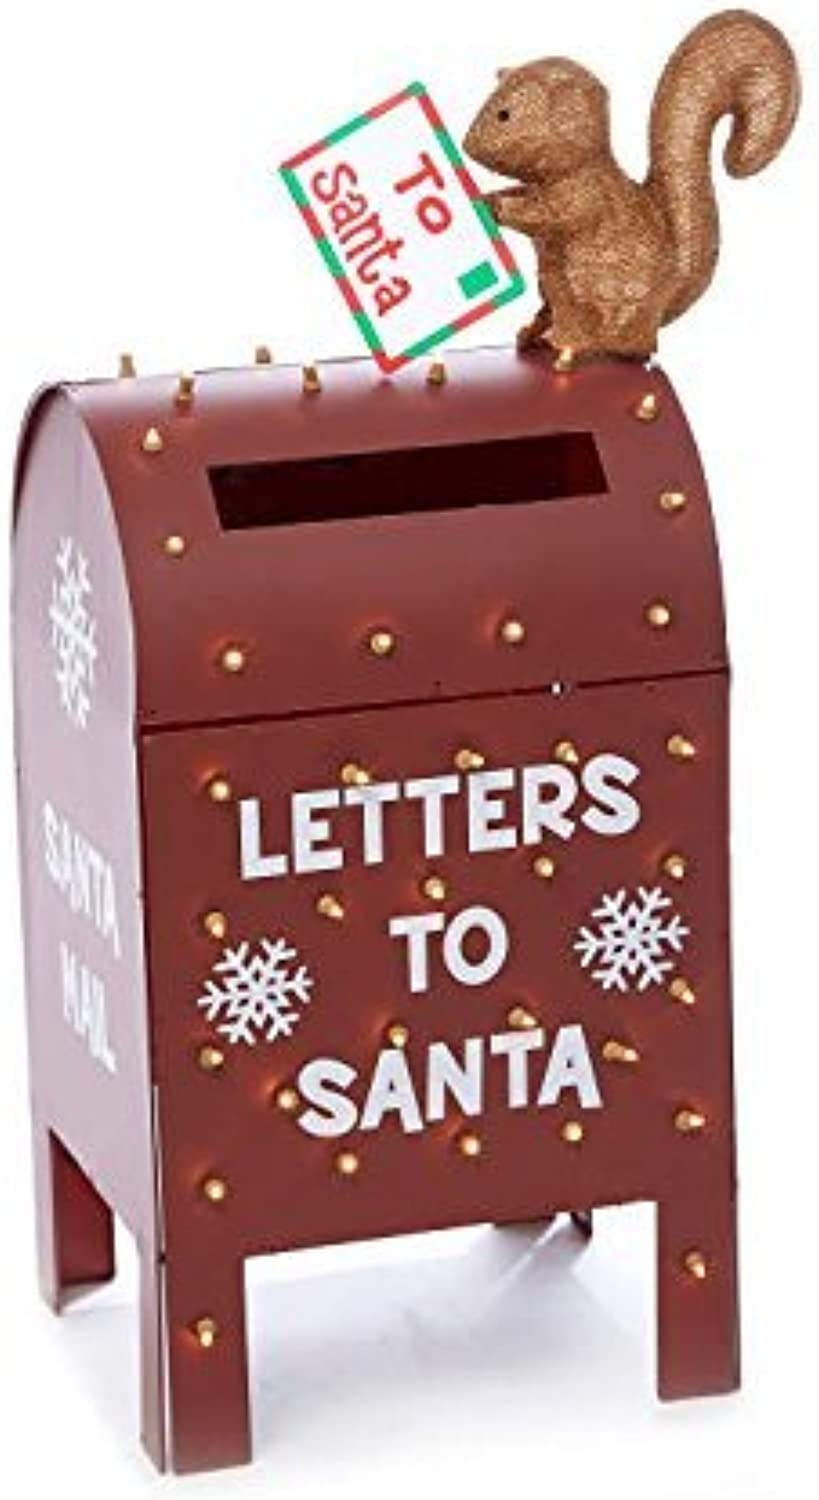 Winter Wonder Lane -  Letters to Santa  Light-Up Metallic Mailbox - 37.5 Inched Tall